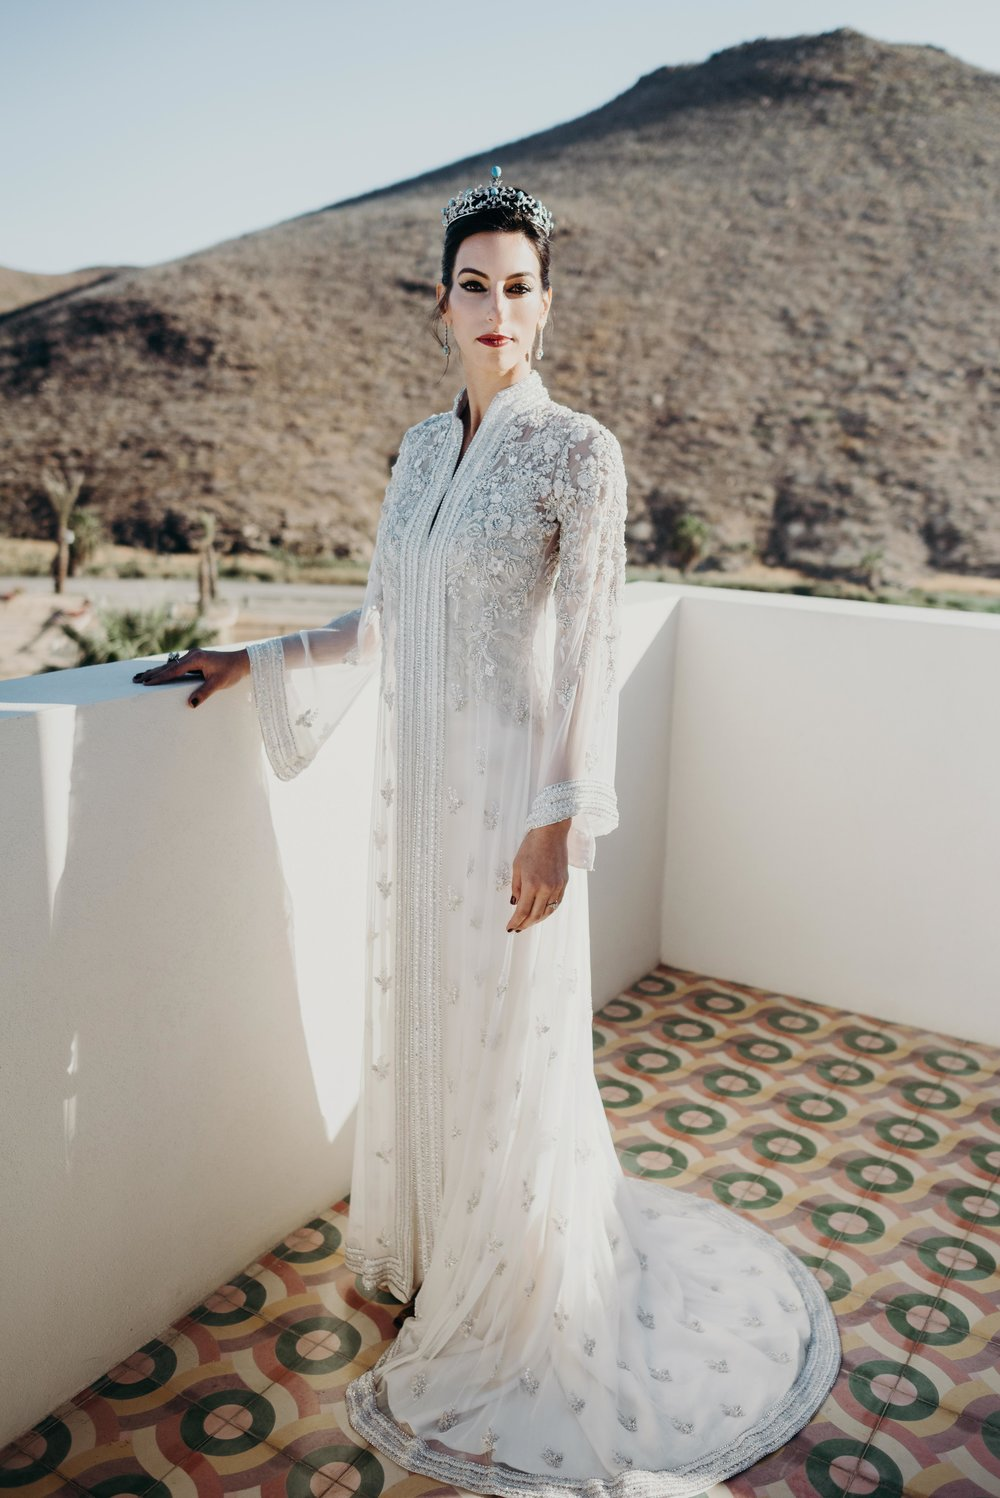 Samera+David Todos Santos Wedding-97.jpg